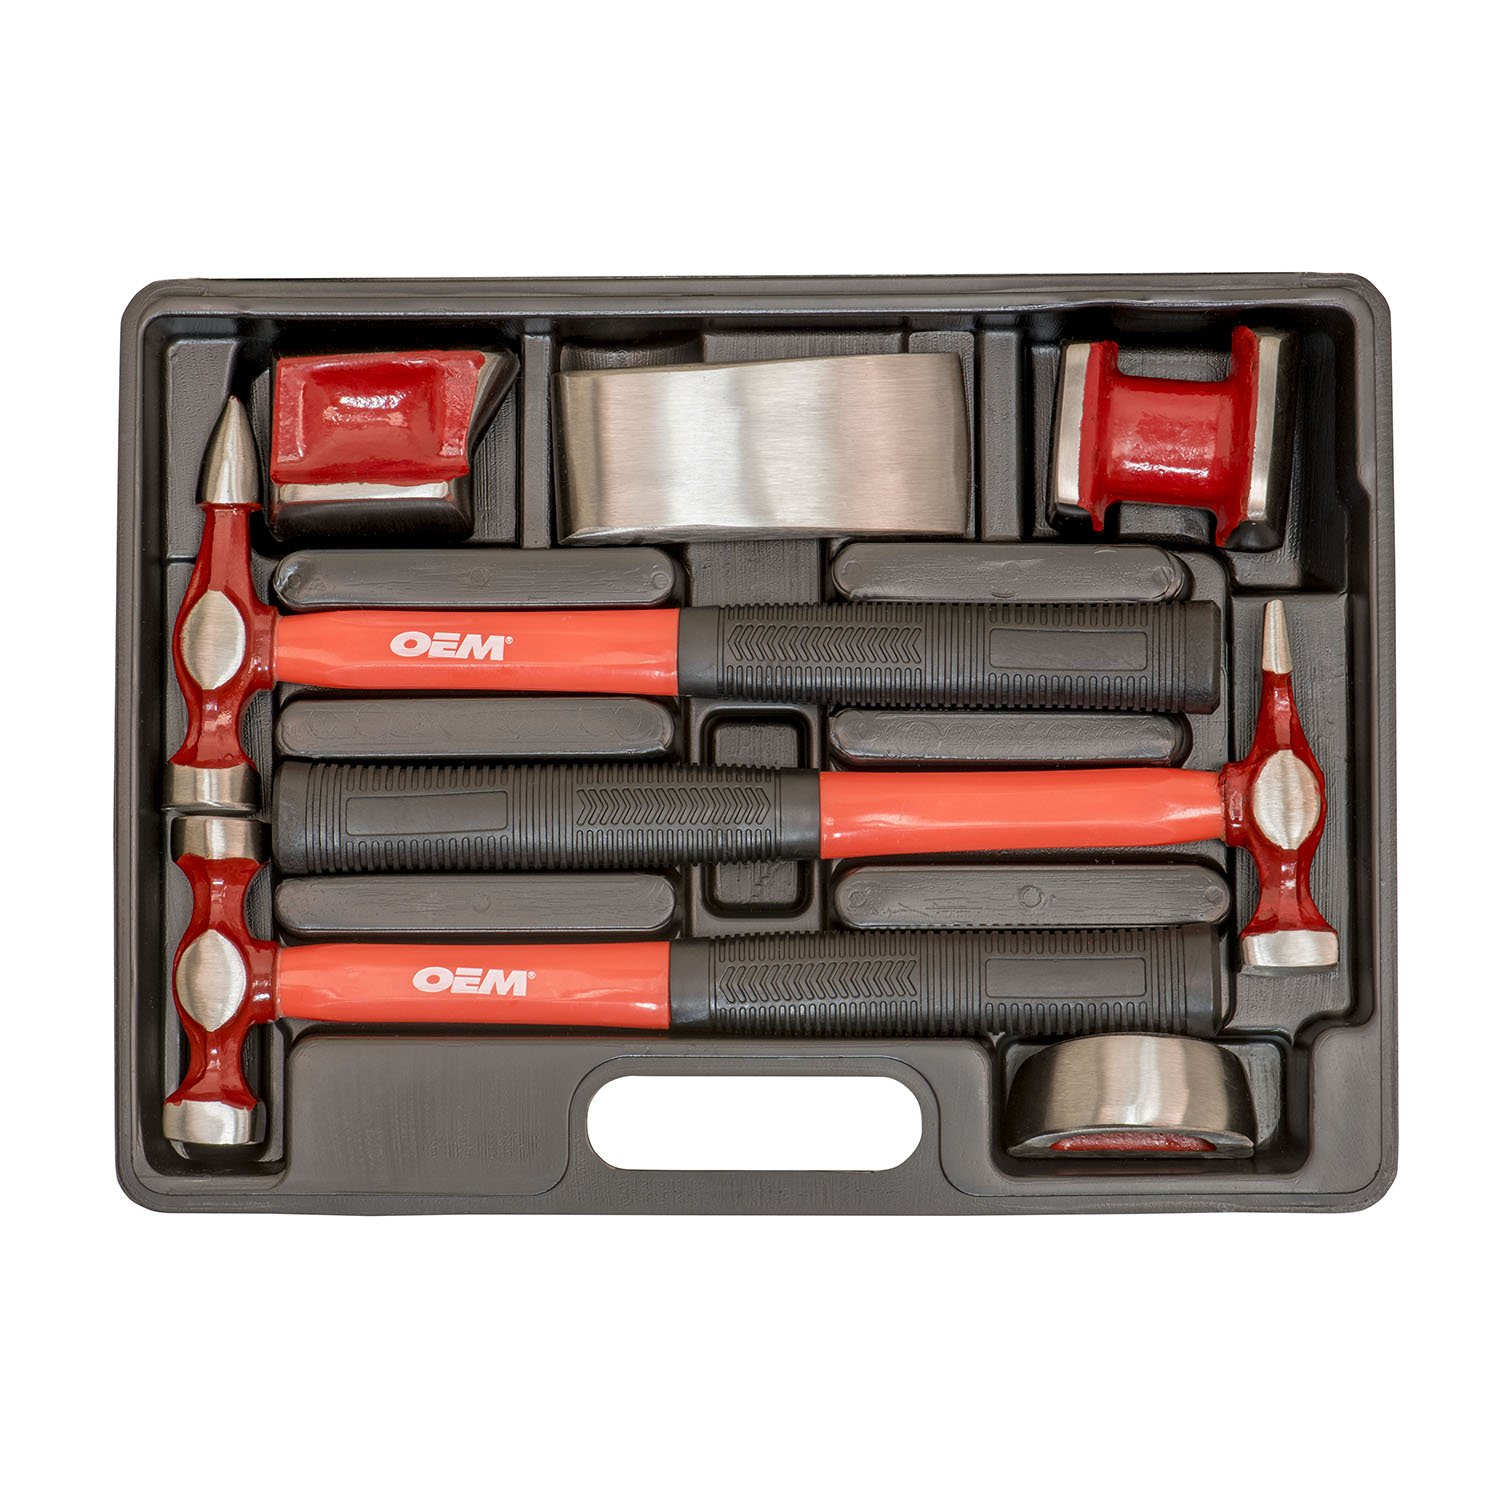 OEMTOOLS 25924 Body Tool Set, 7-Piece